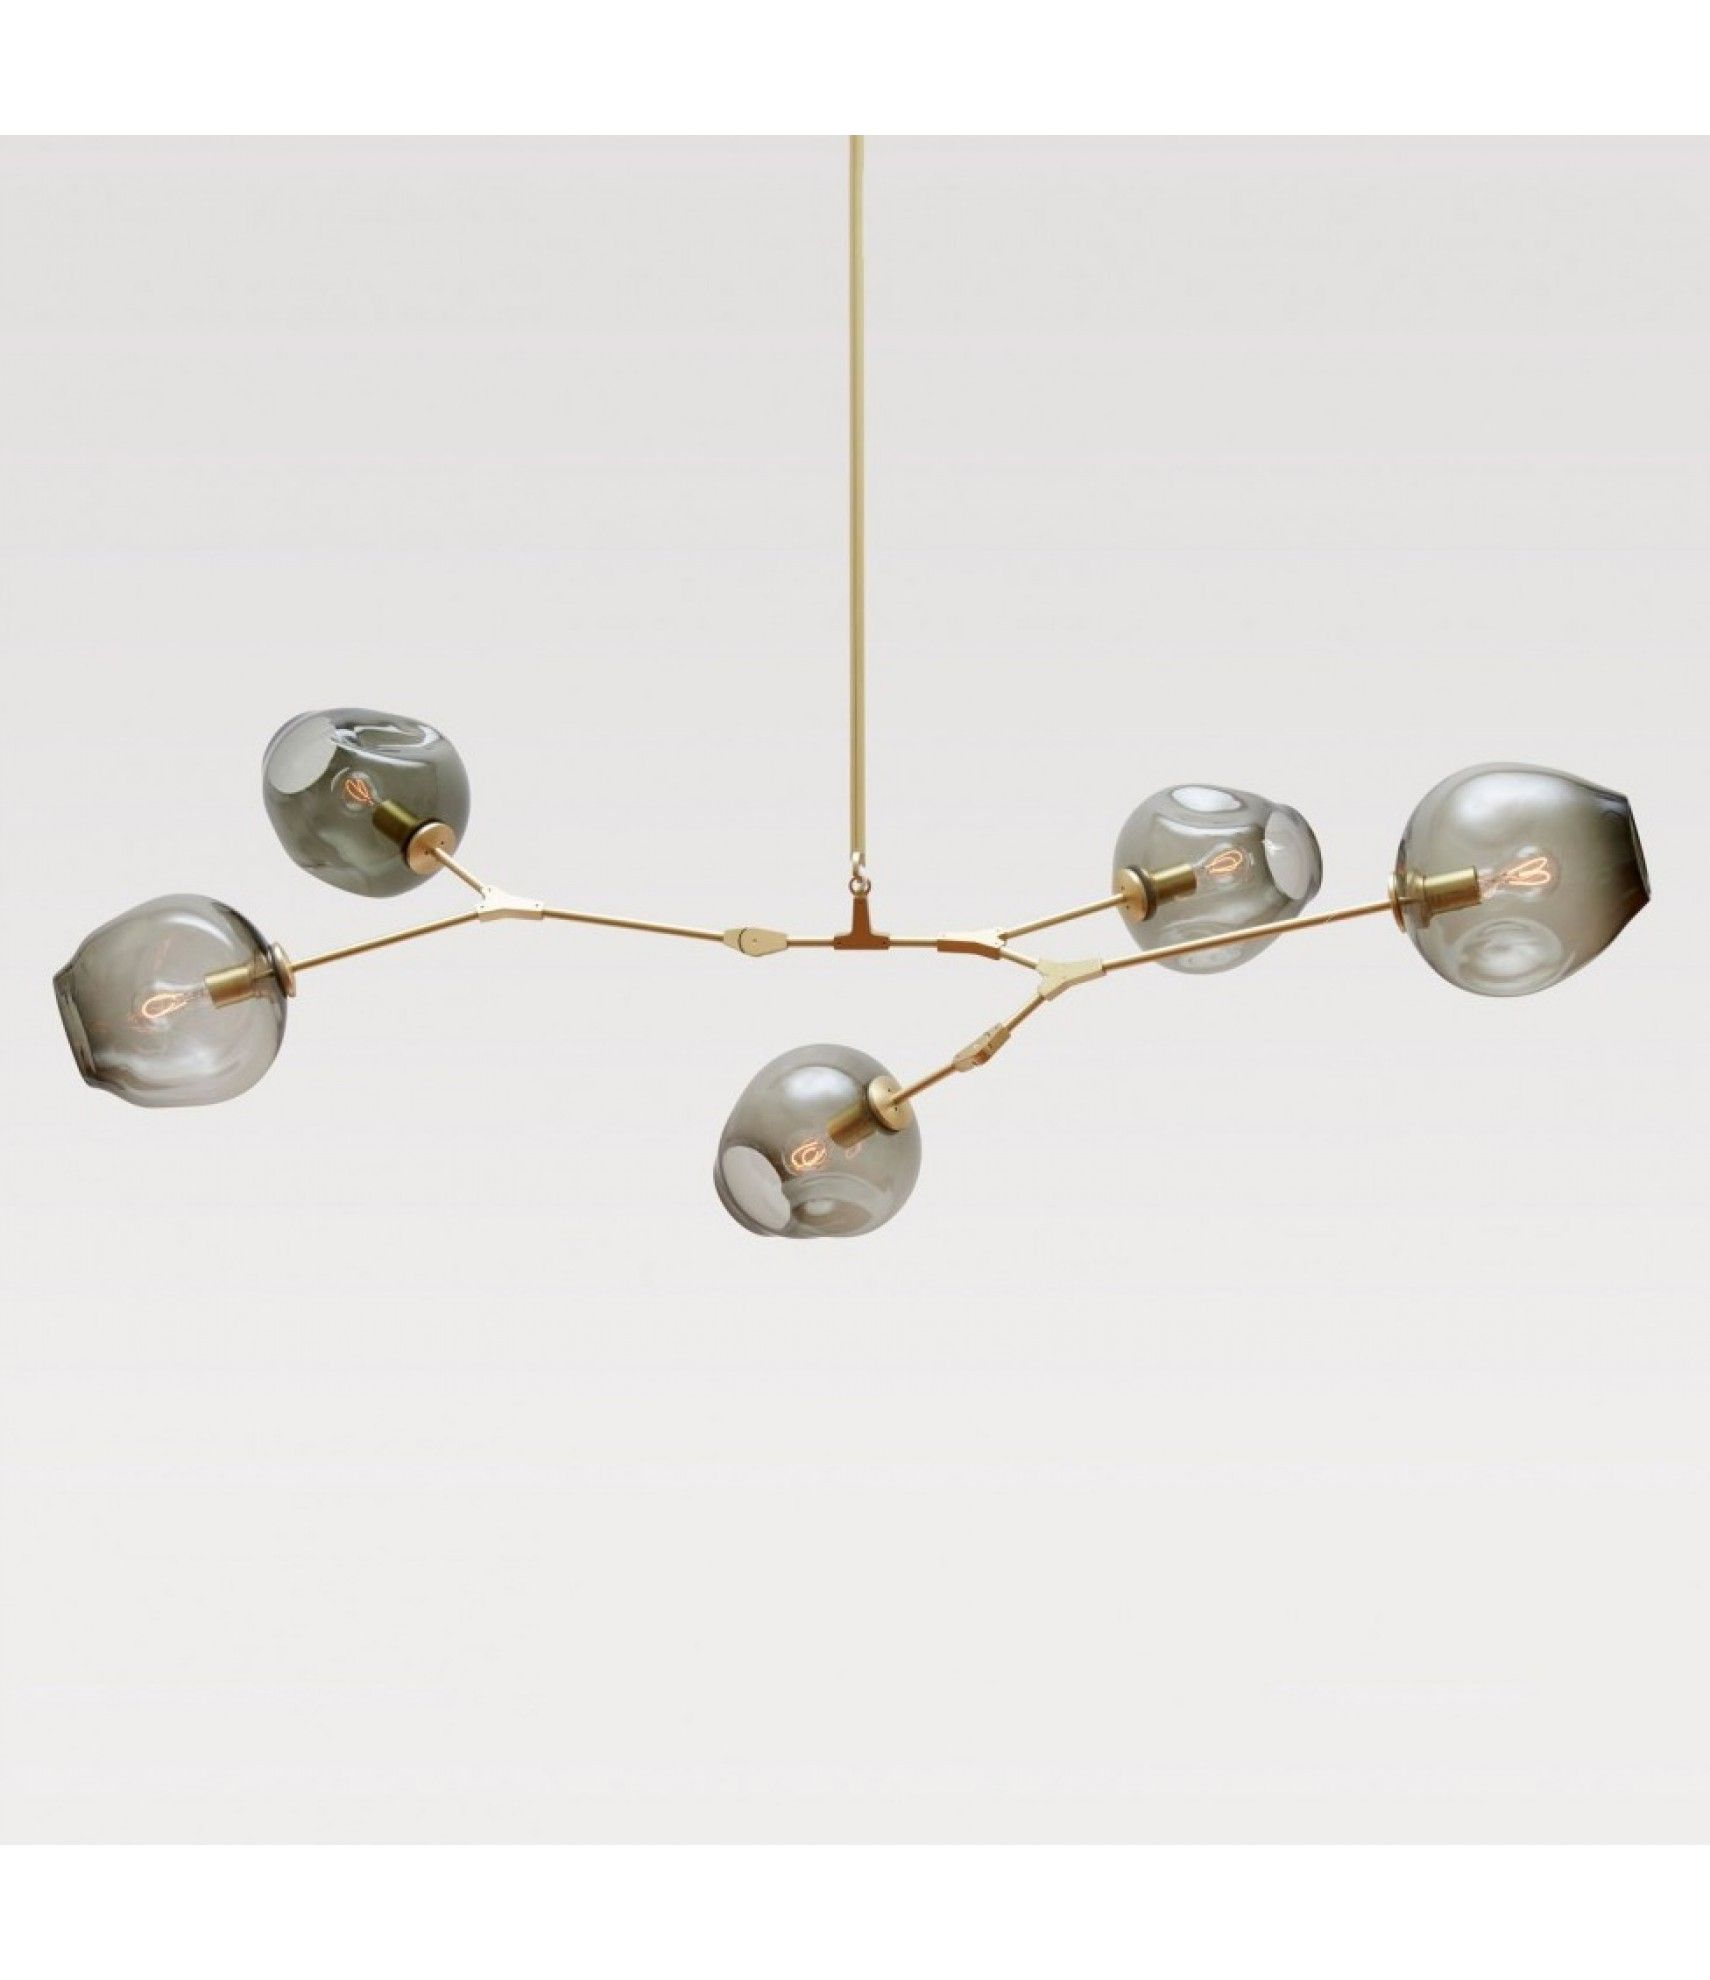 lucretia lighting 725 replica lindsey adelman bubble chandelier black or gold finish - Bubble Chandelier